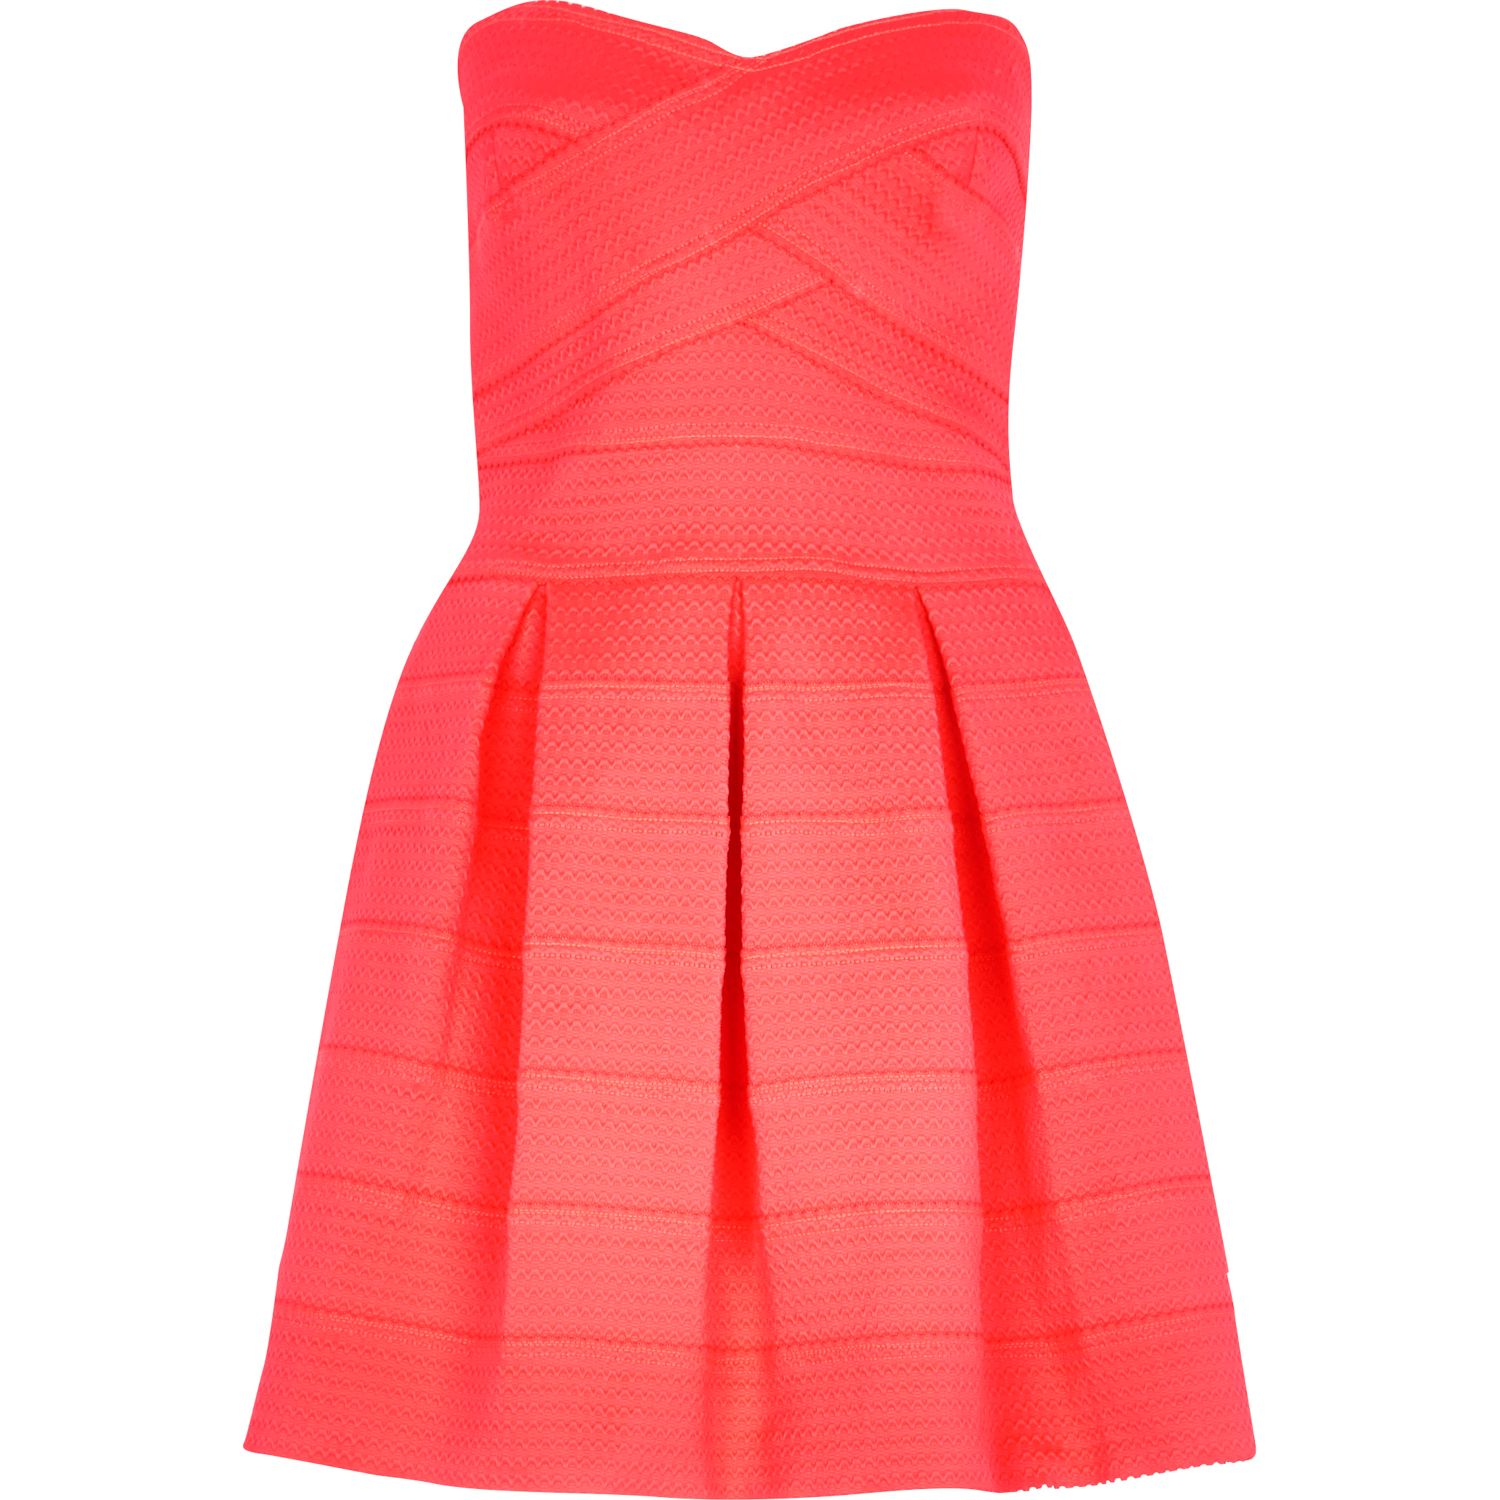 River Island New In Dresses - Fashion Outlet Review